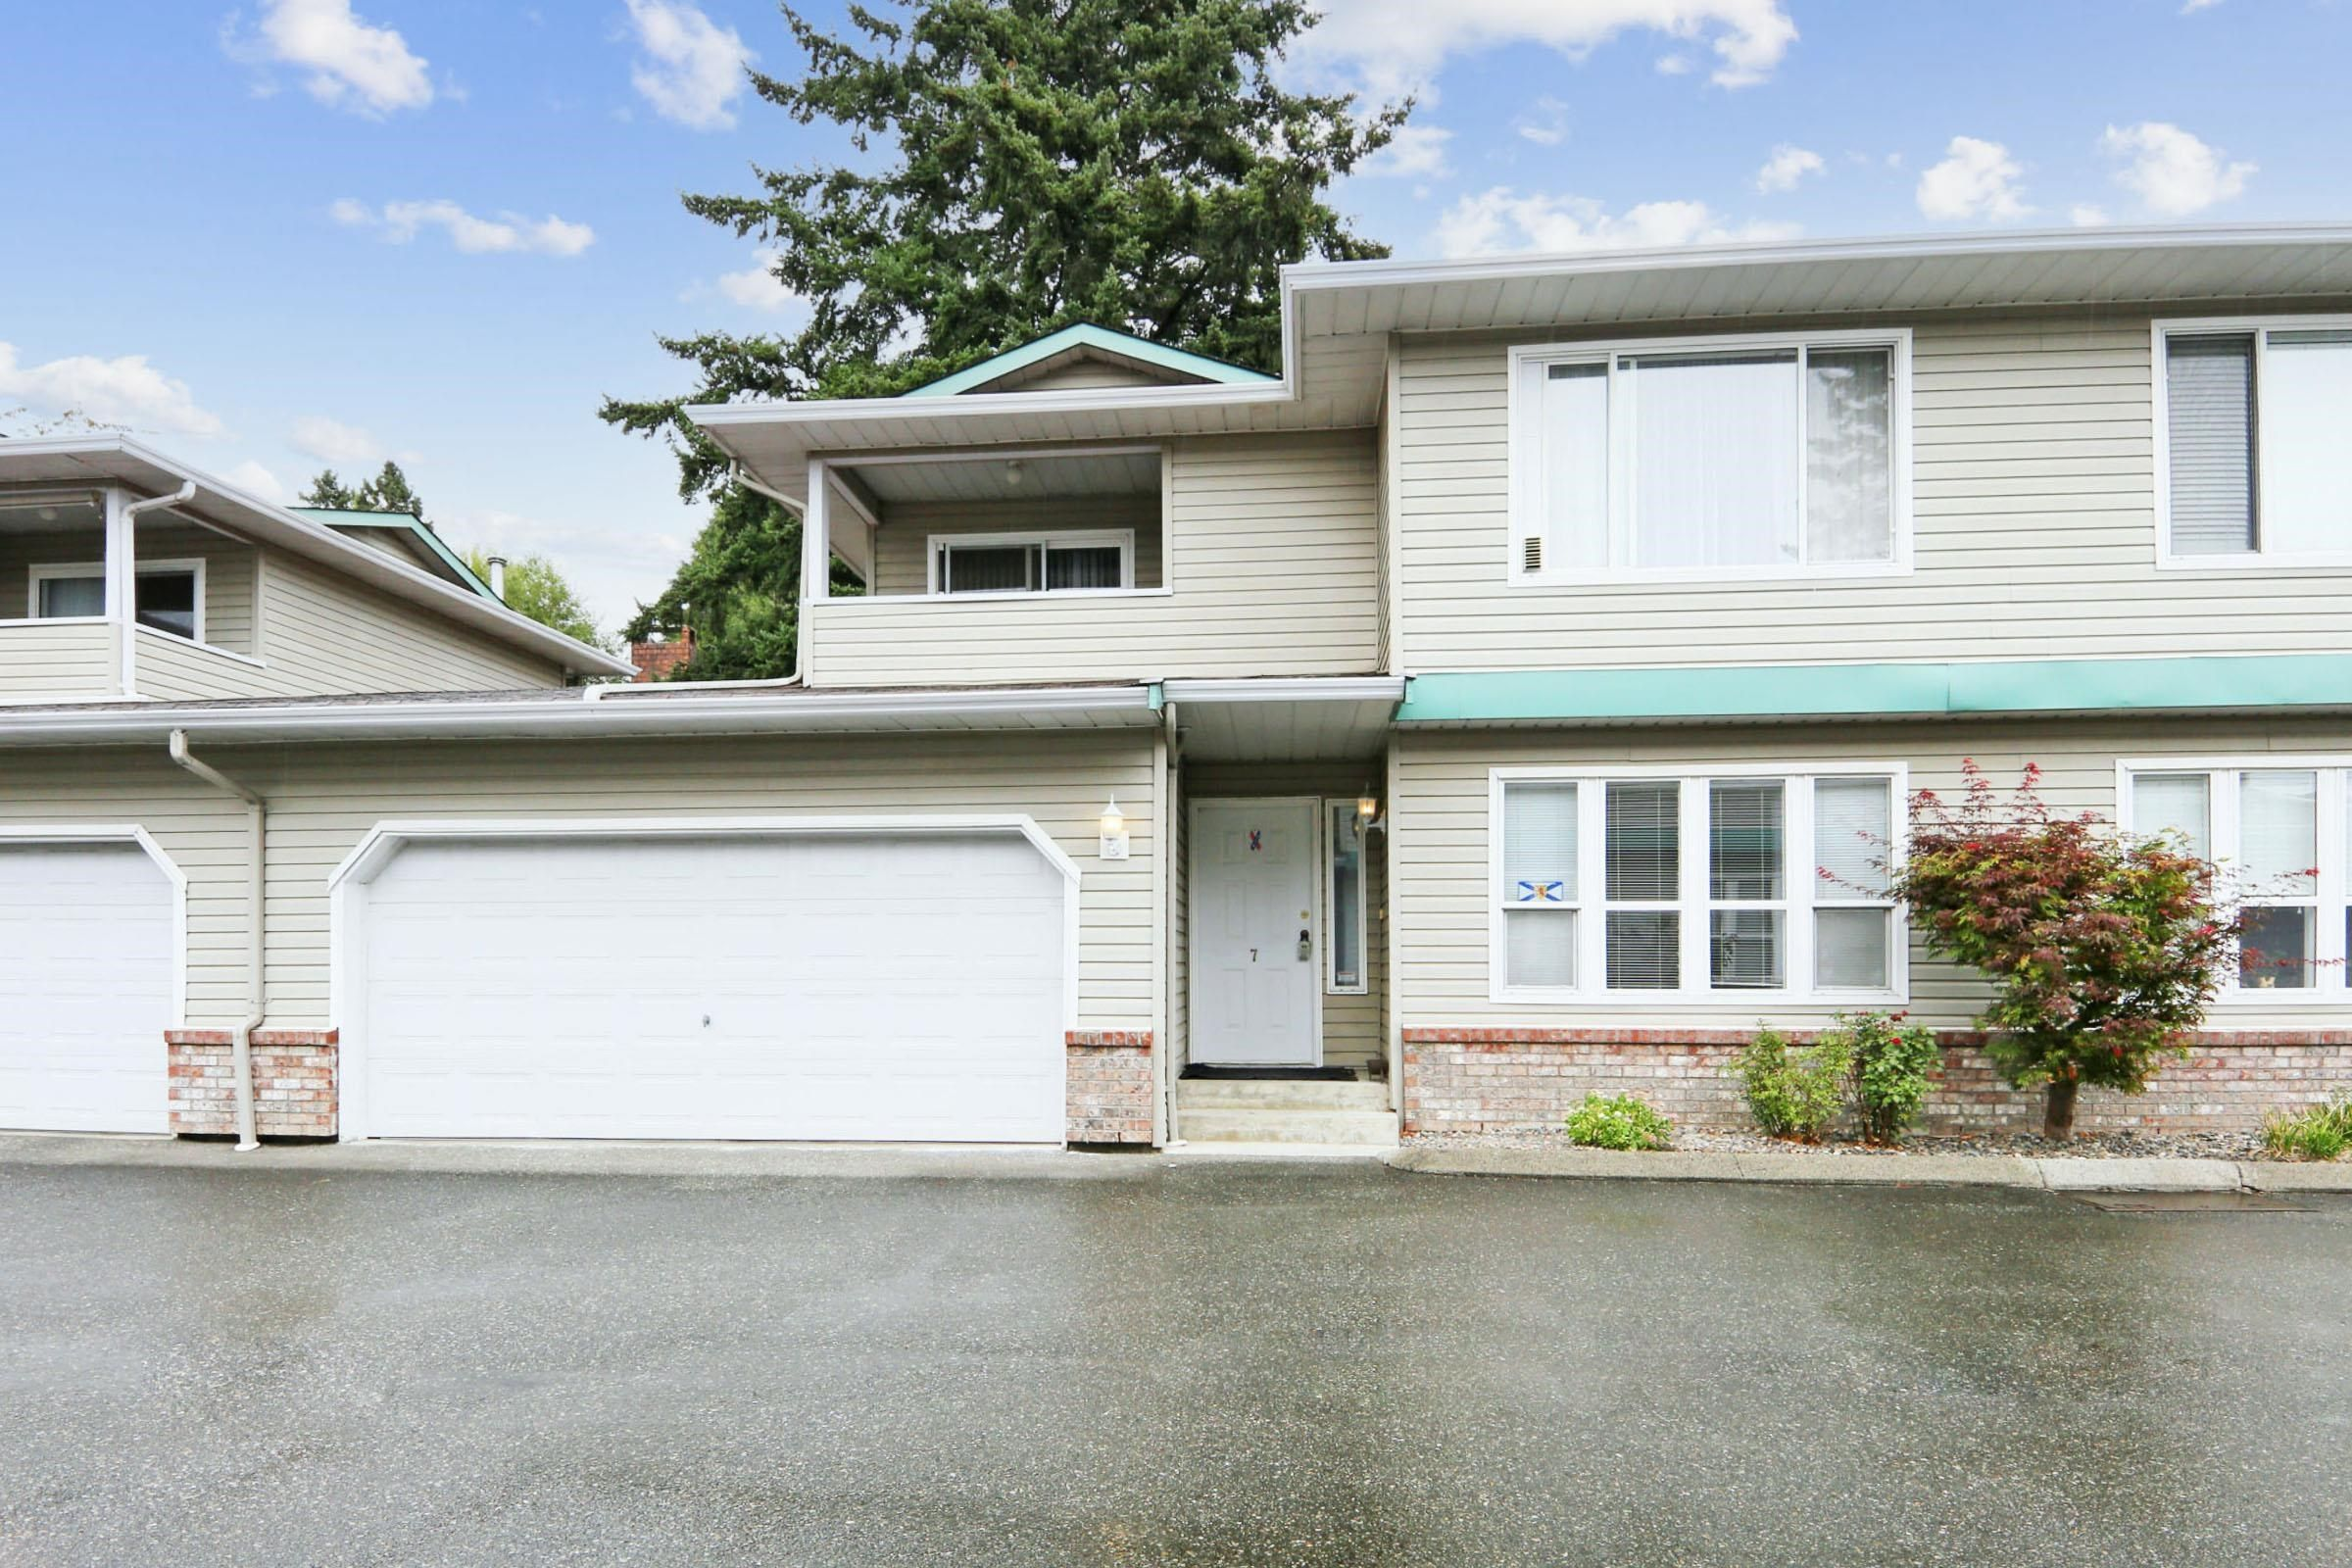 """Main Photo: 7 46209 CESSNA Drive in Chilliwack: Chilliwack E Young-Yale Townhouse for sale in """"Maple Lane"""" : MLS®# R2617765"""